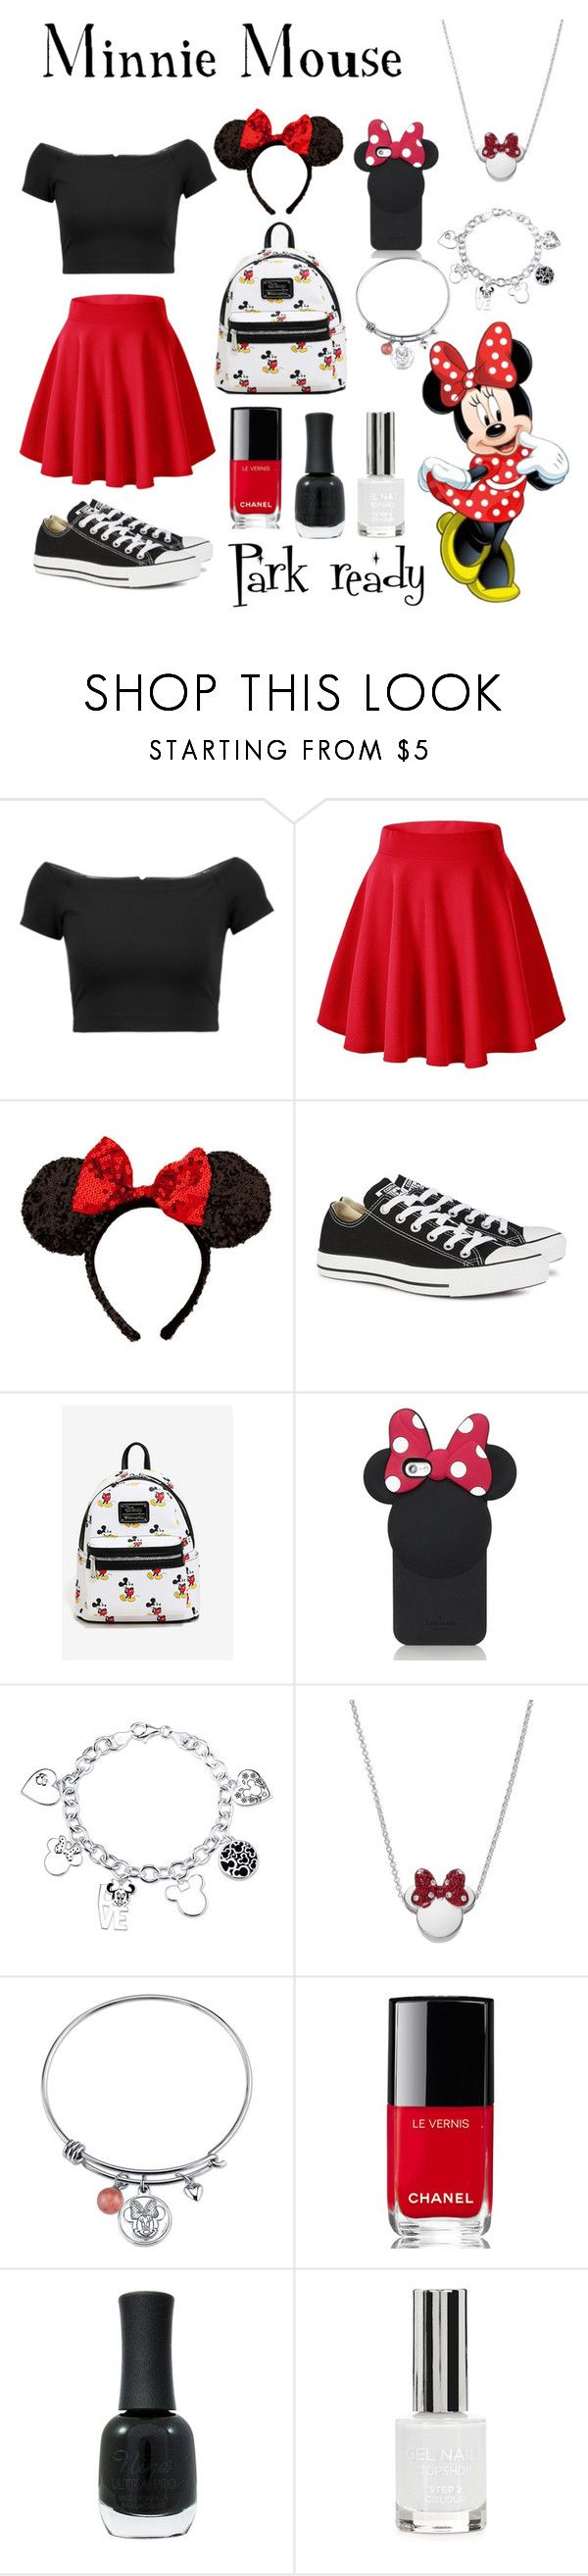 """Minnie Mouse"" by brianapaige14 ❤ liked on Polyvore featuring Alice + Olivia, Disney, Converse, Kate Spade, Chanel, Charlotte Russe, Topshop, disney, skaterskirt and parkready"